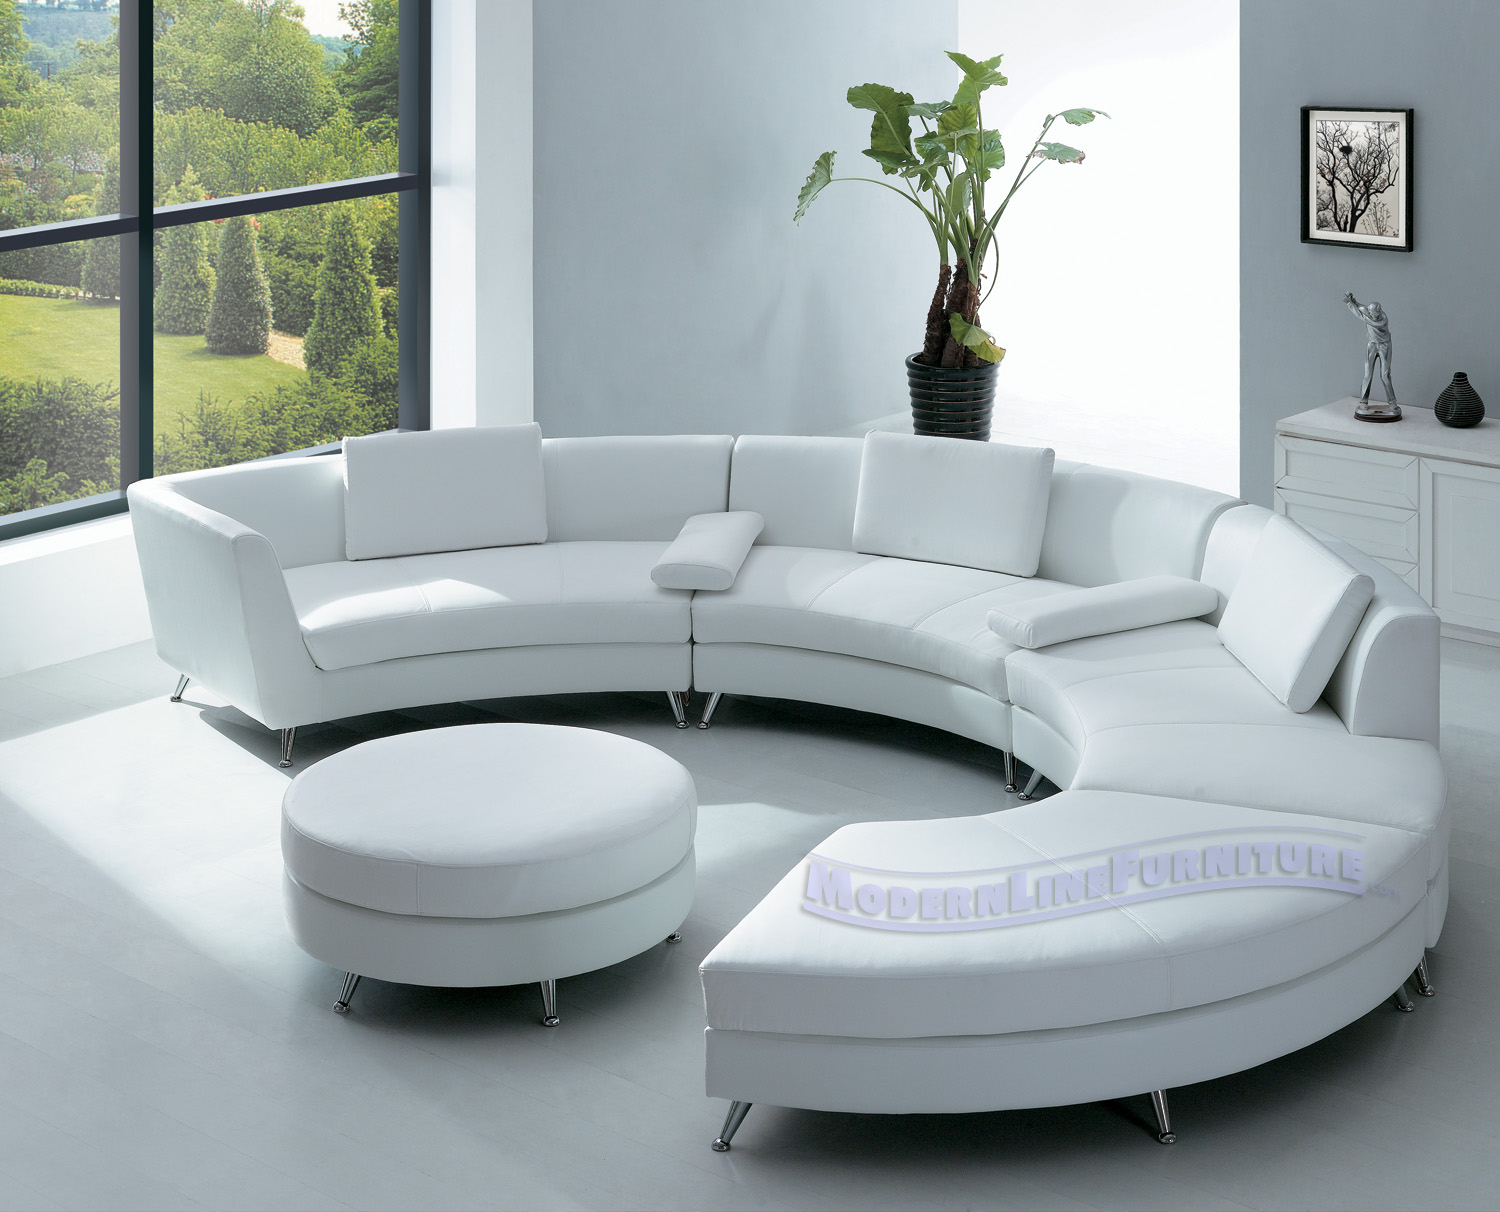 Elegance Of Living: Sofa Sets Designs